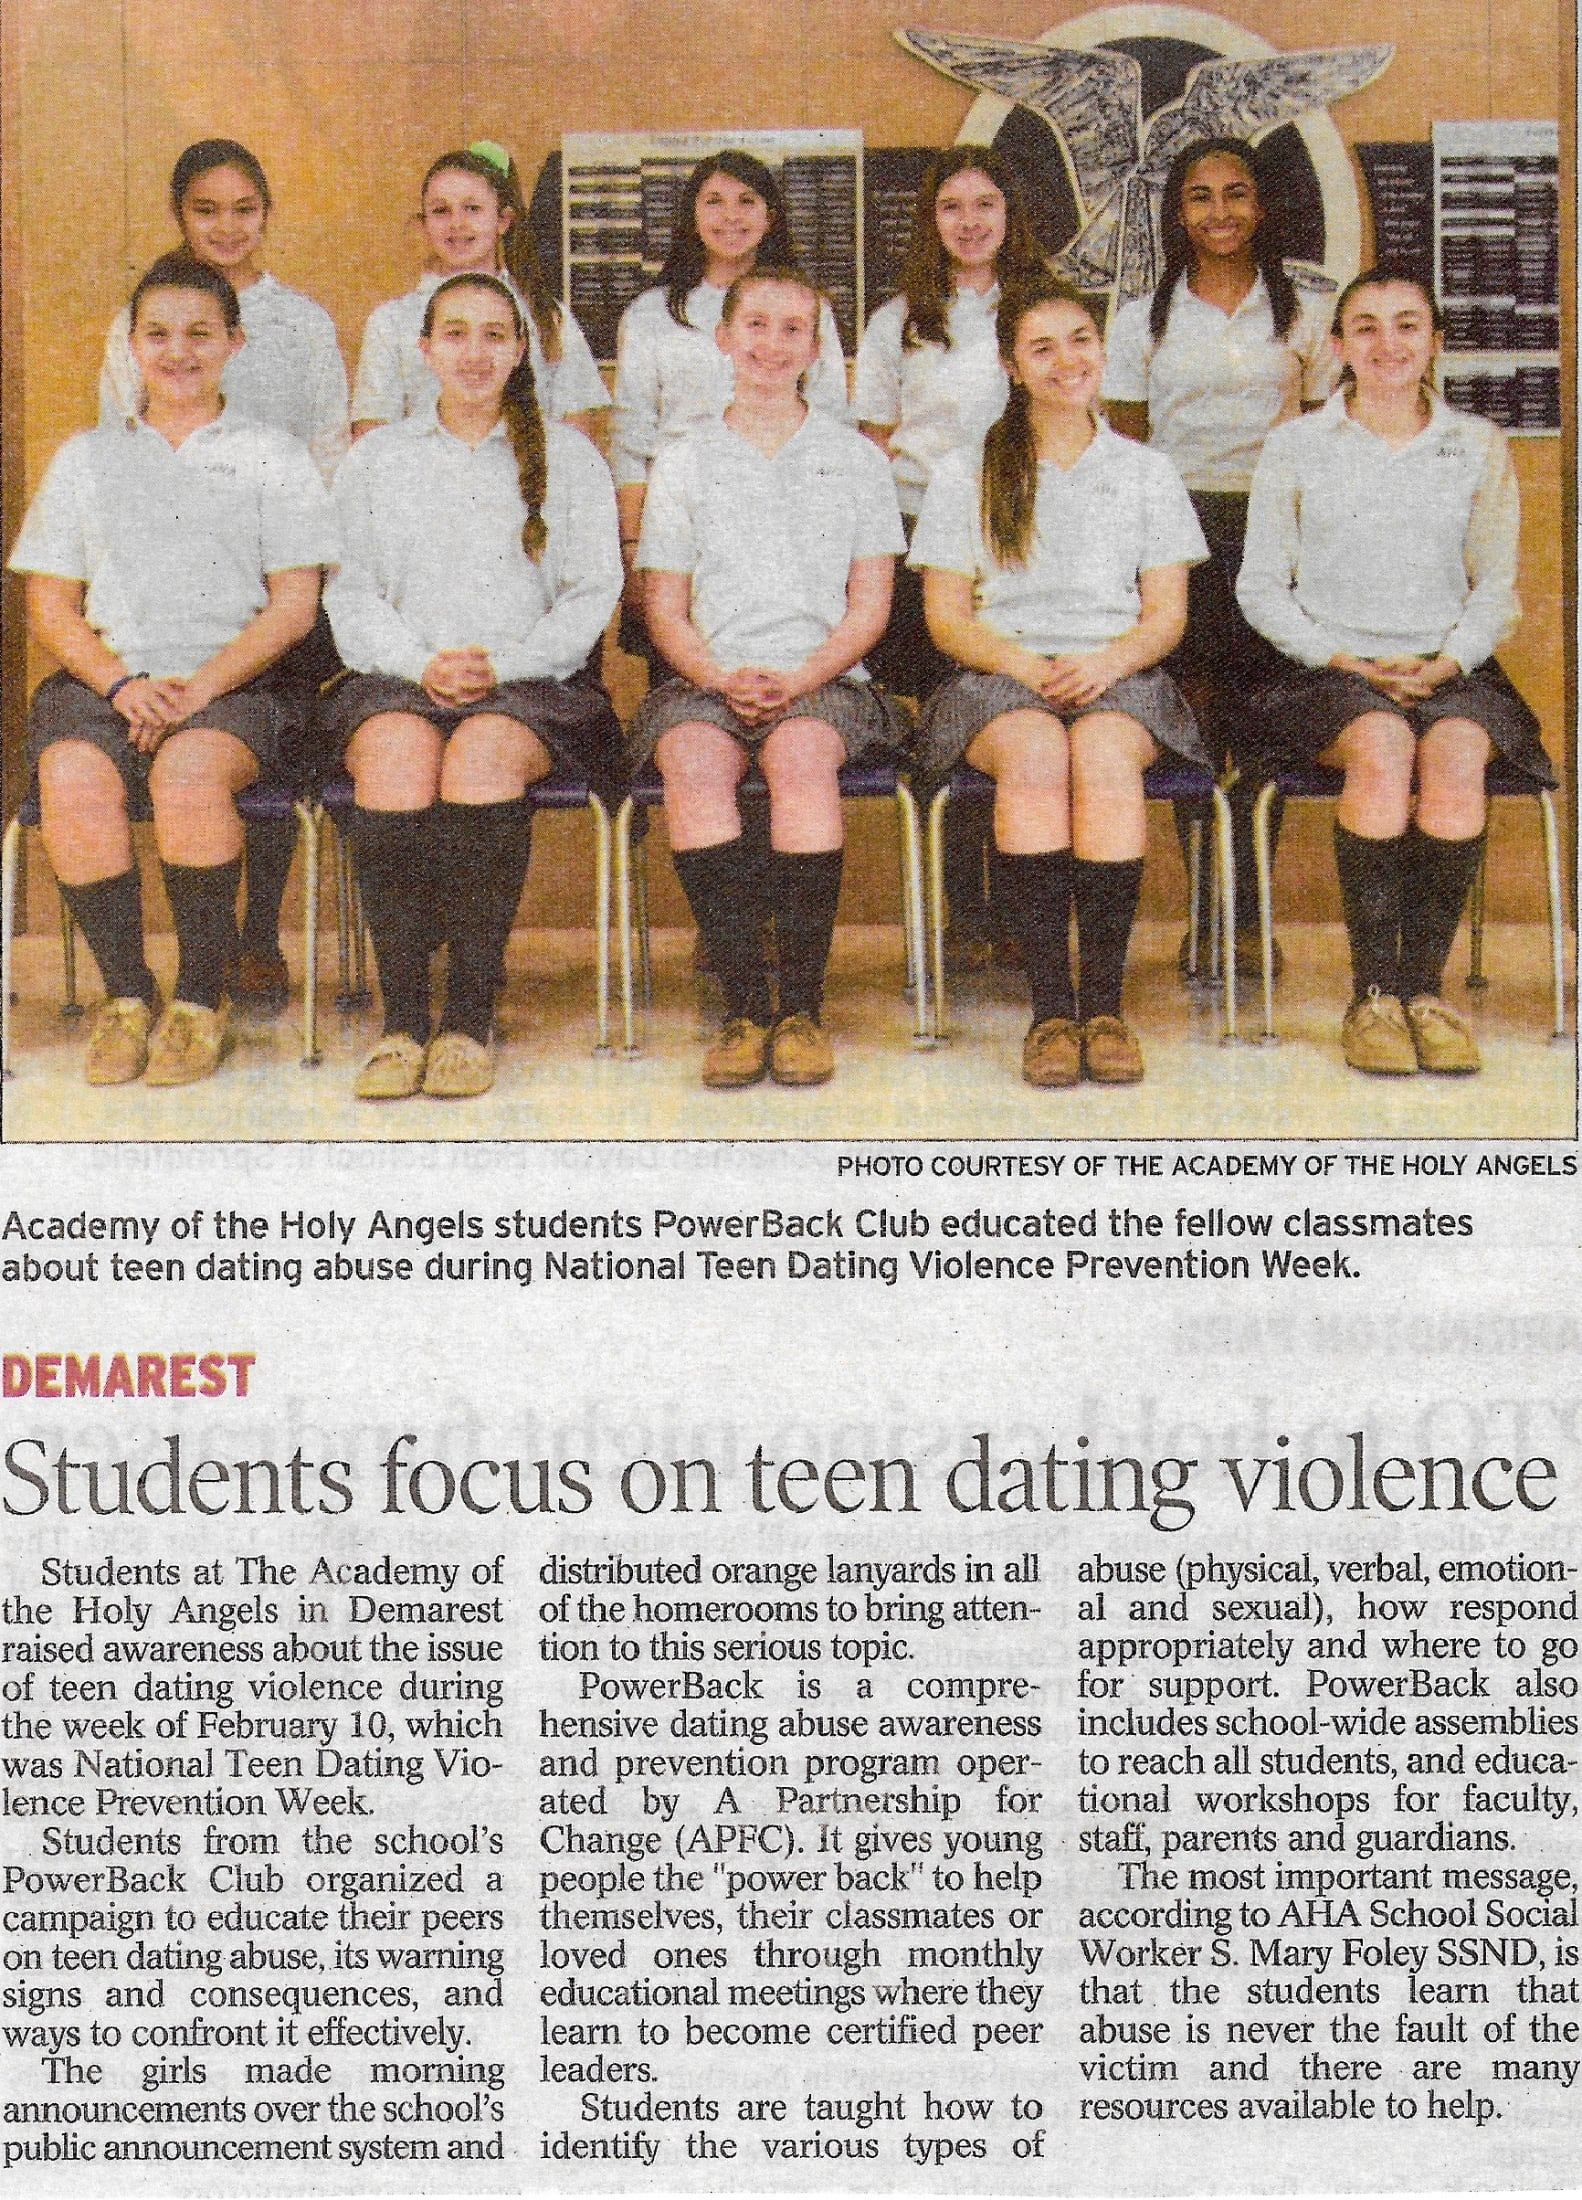 Article violence teen news about Violence Impacts